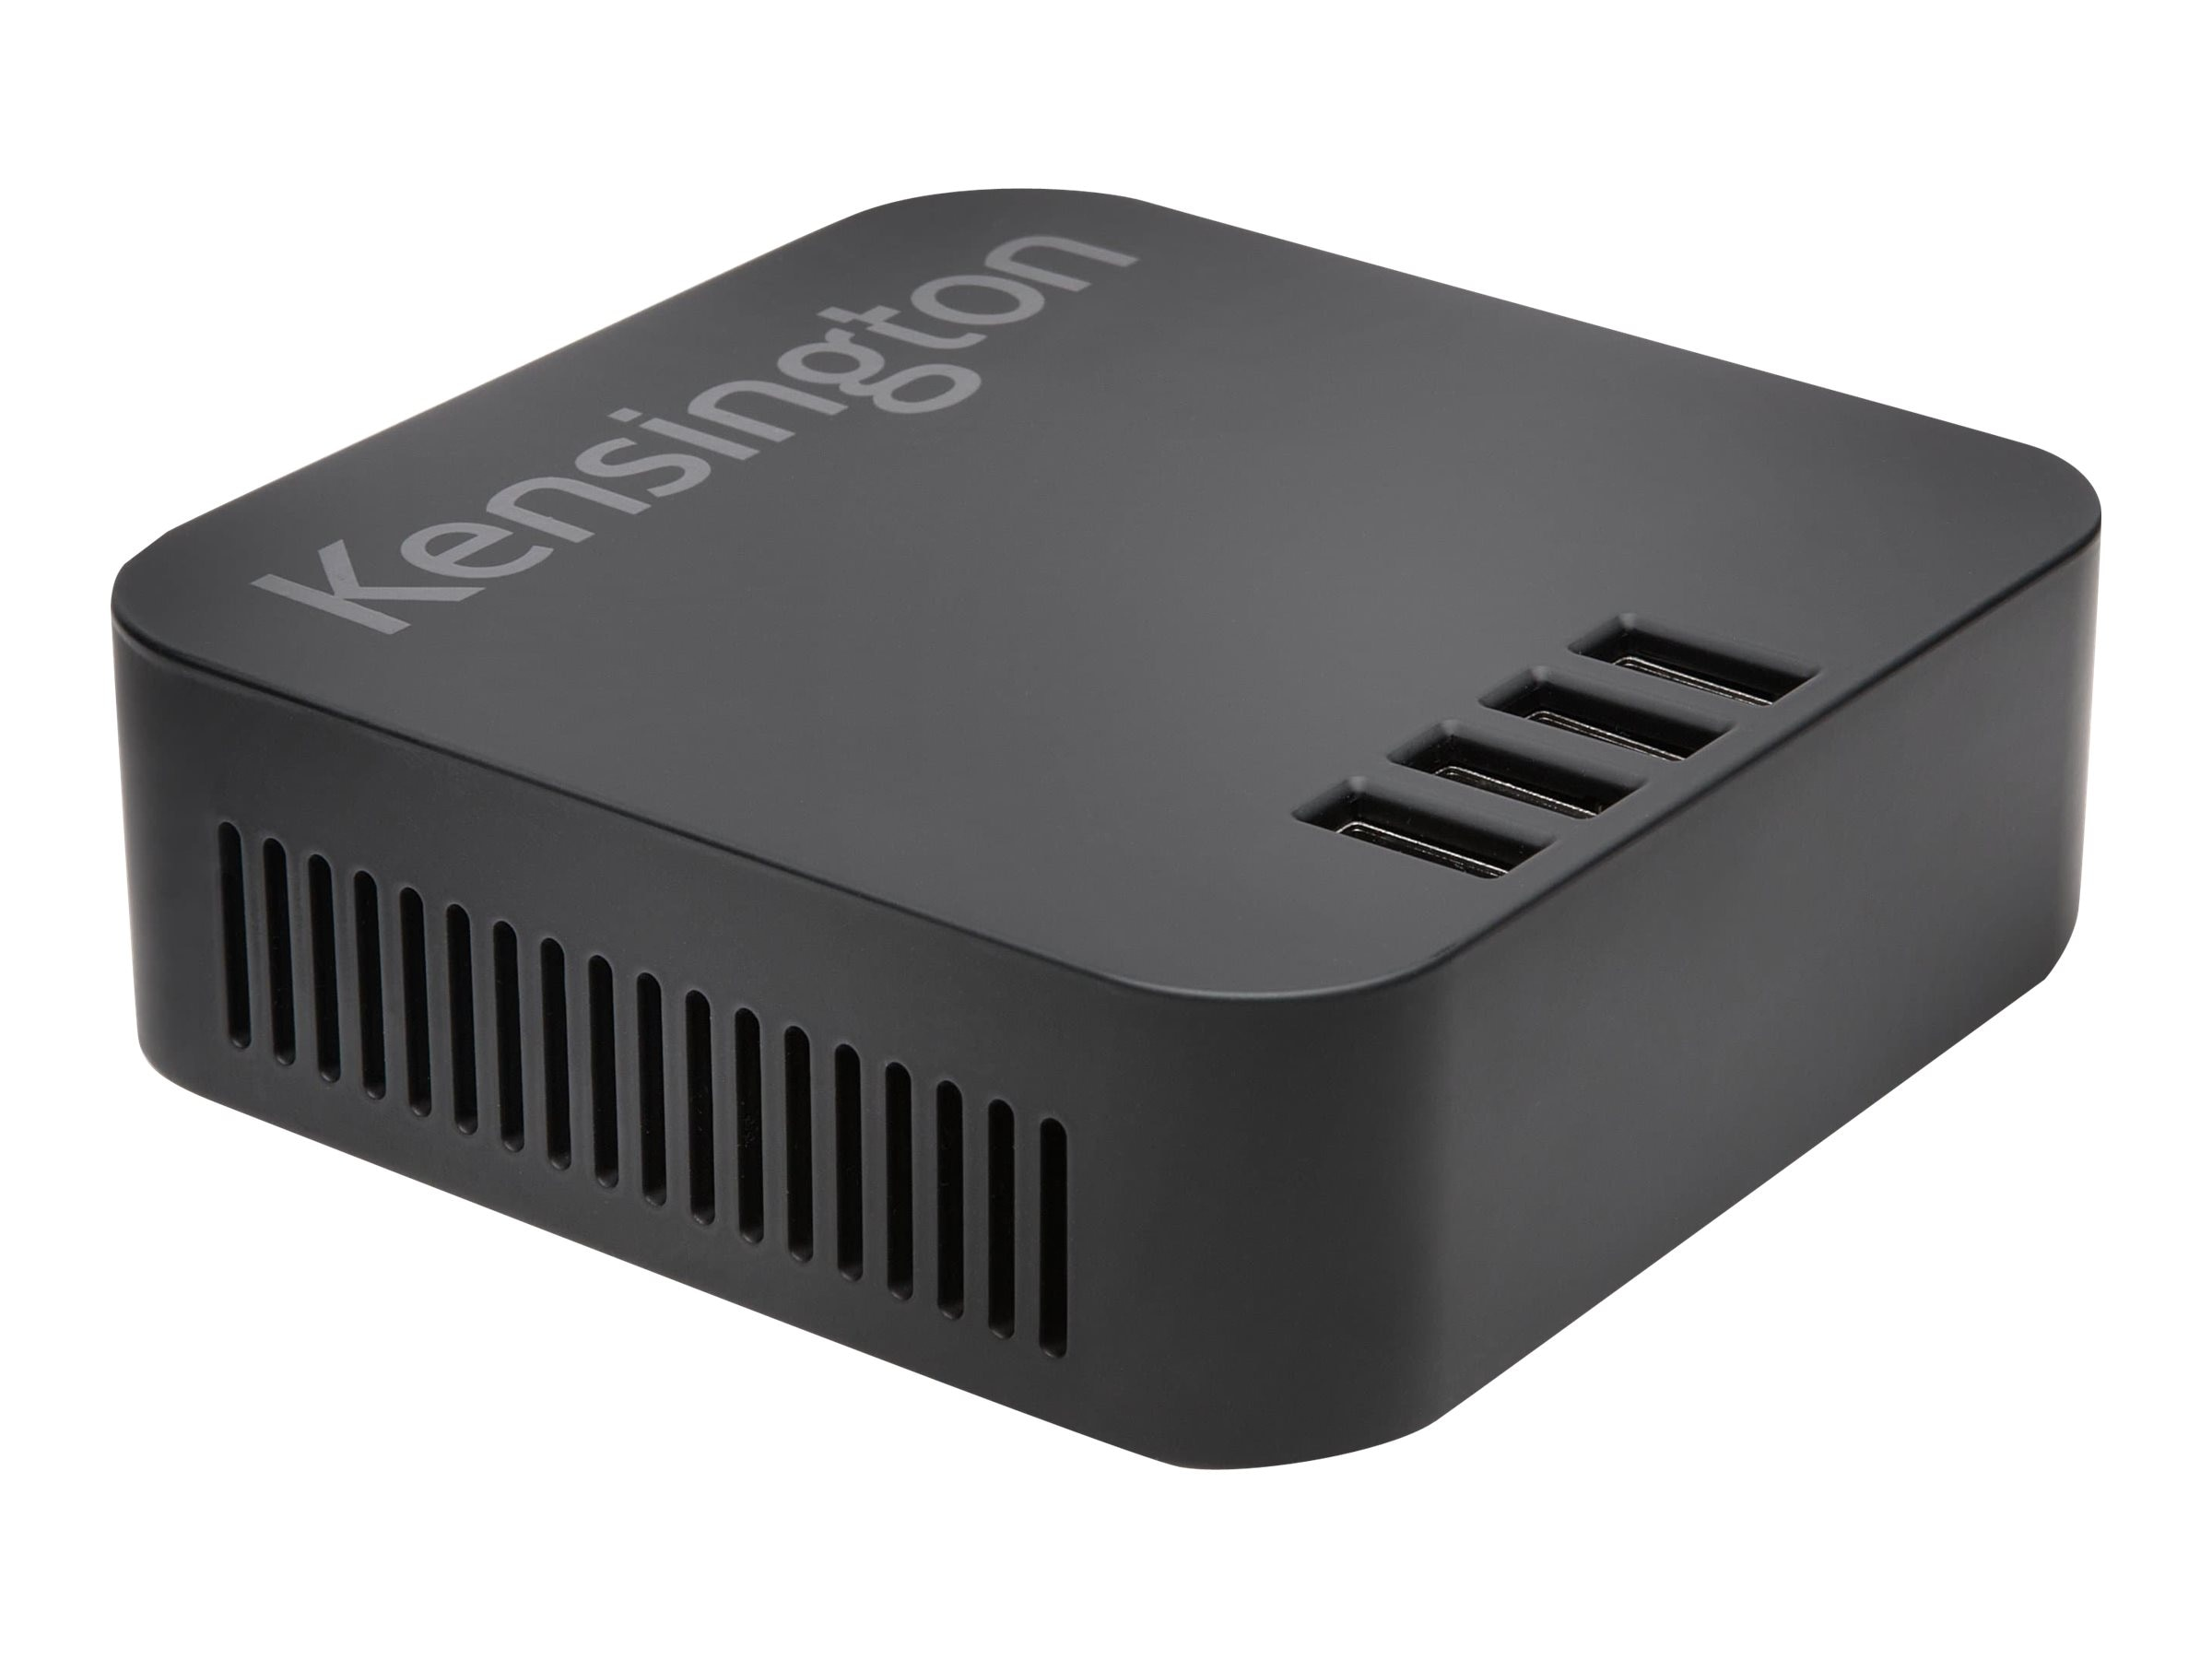 Kensington 48W 4-Port USB Charger, Black, K38212US